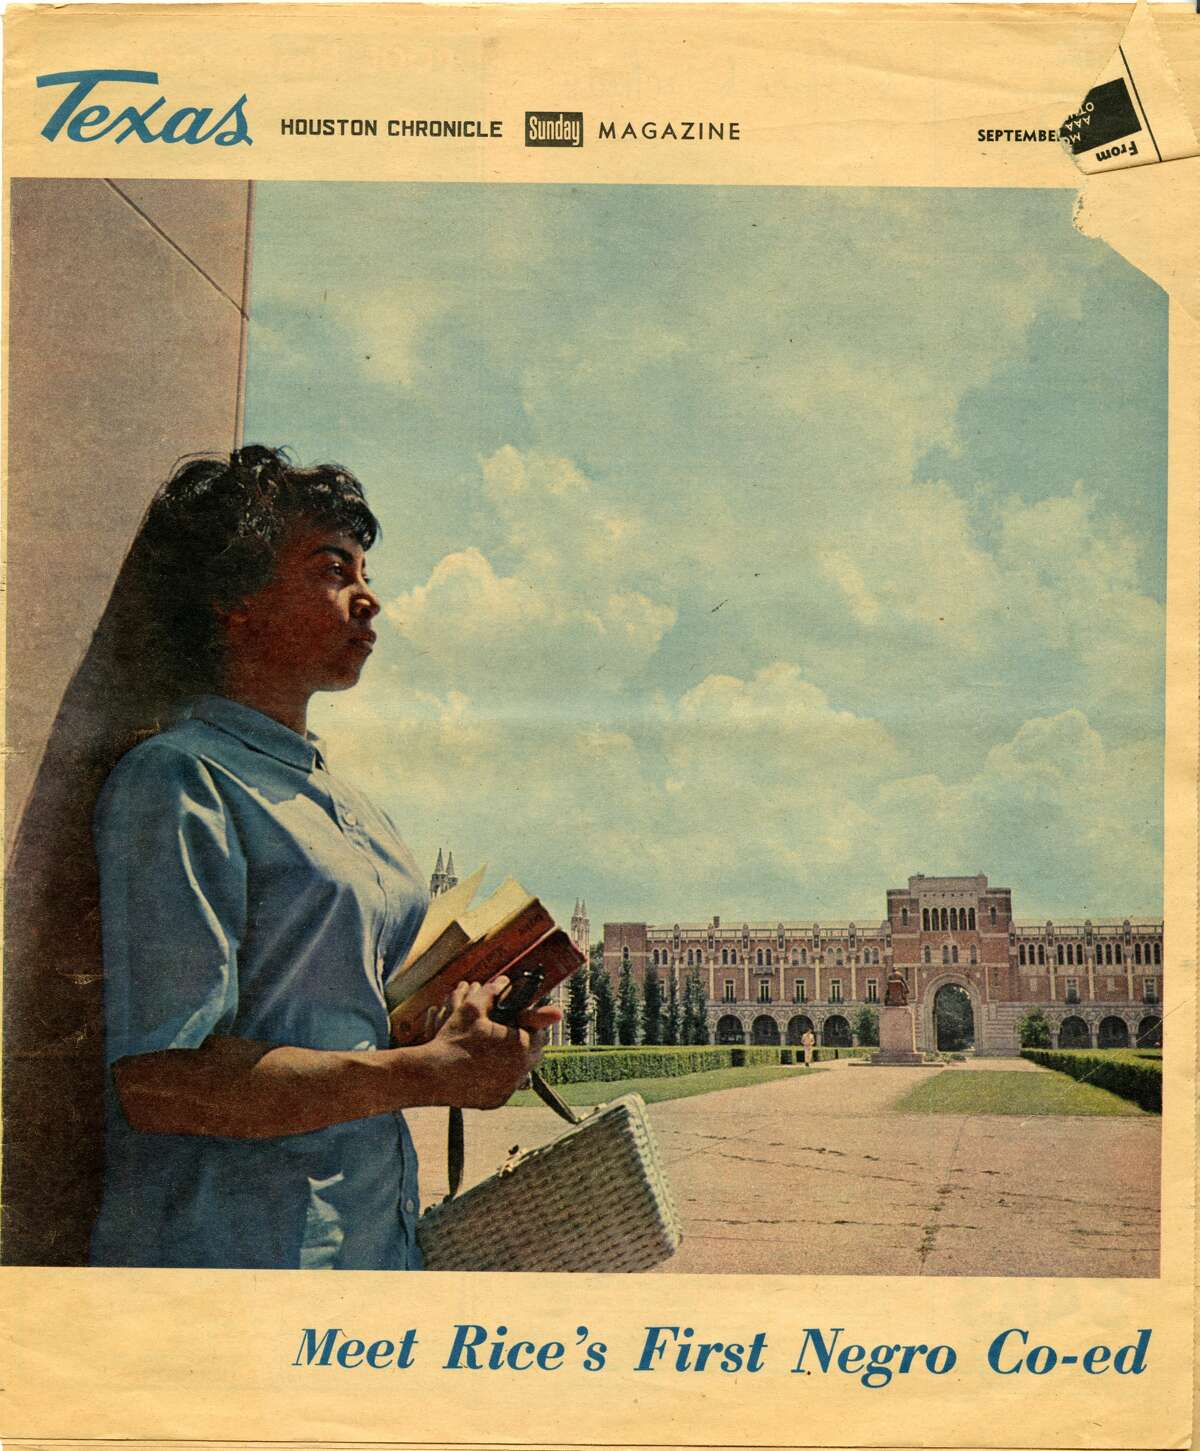 Jacqueline McCauley was the first black woman admitted to Rice University. She started school there in 1965, according to Rice archives.